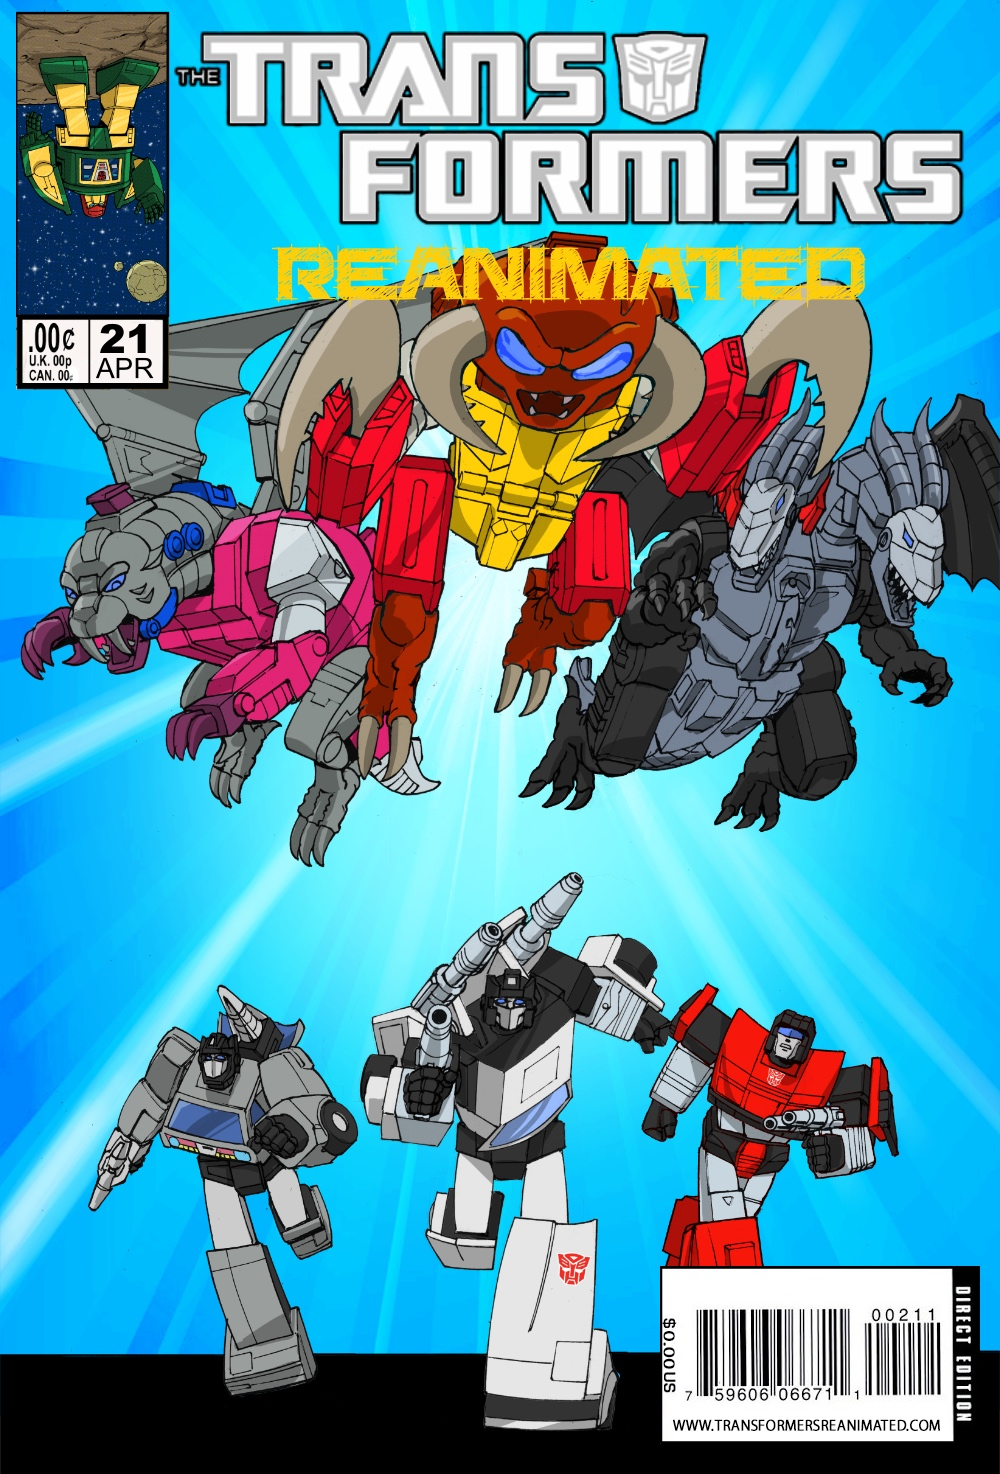 Transformers: REANIMATED Issue 21: Monsterbot Mash